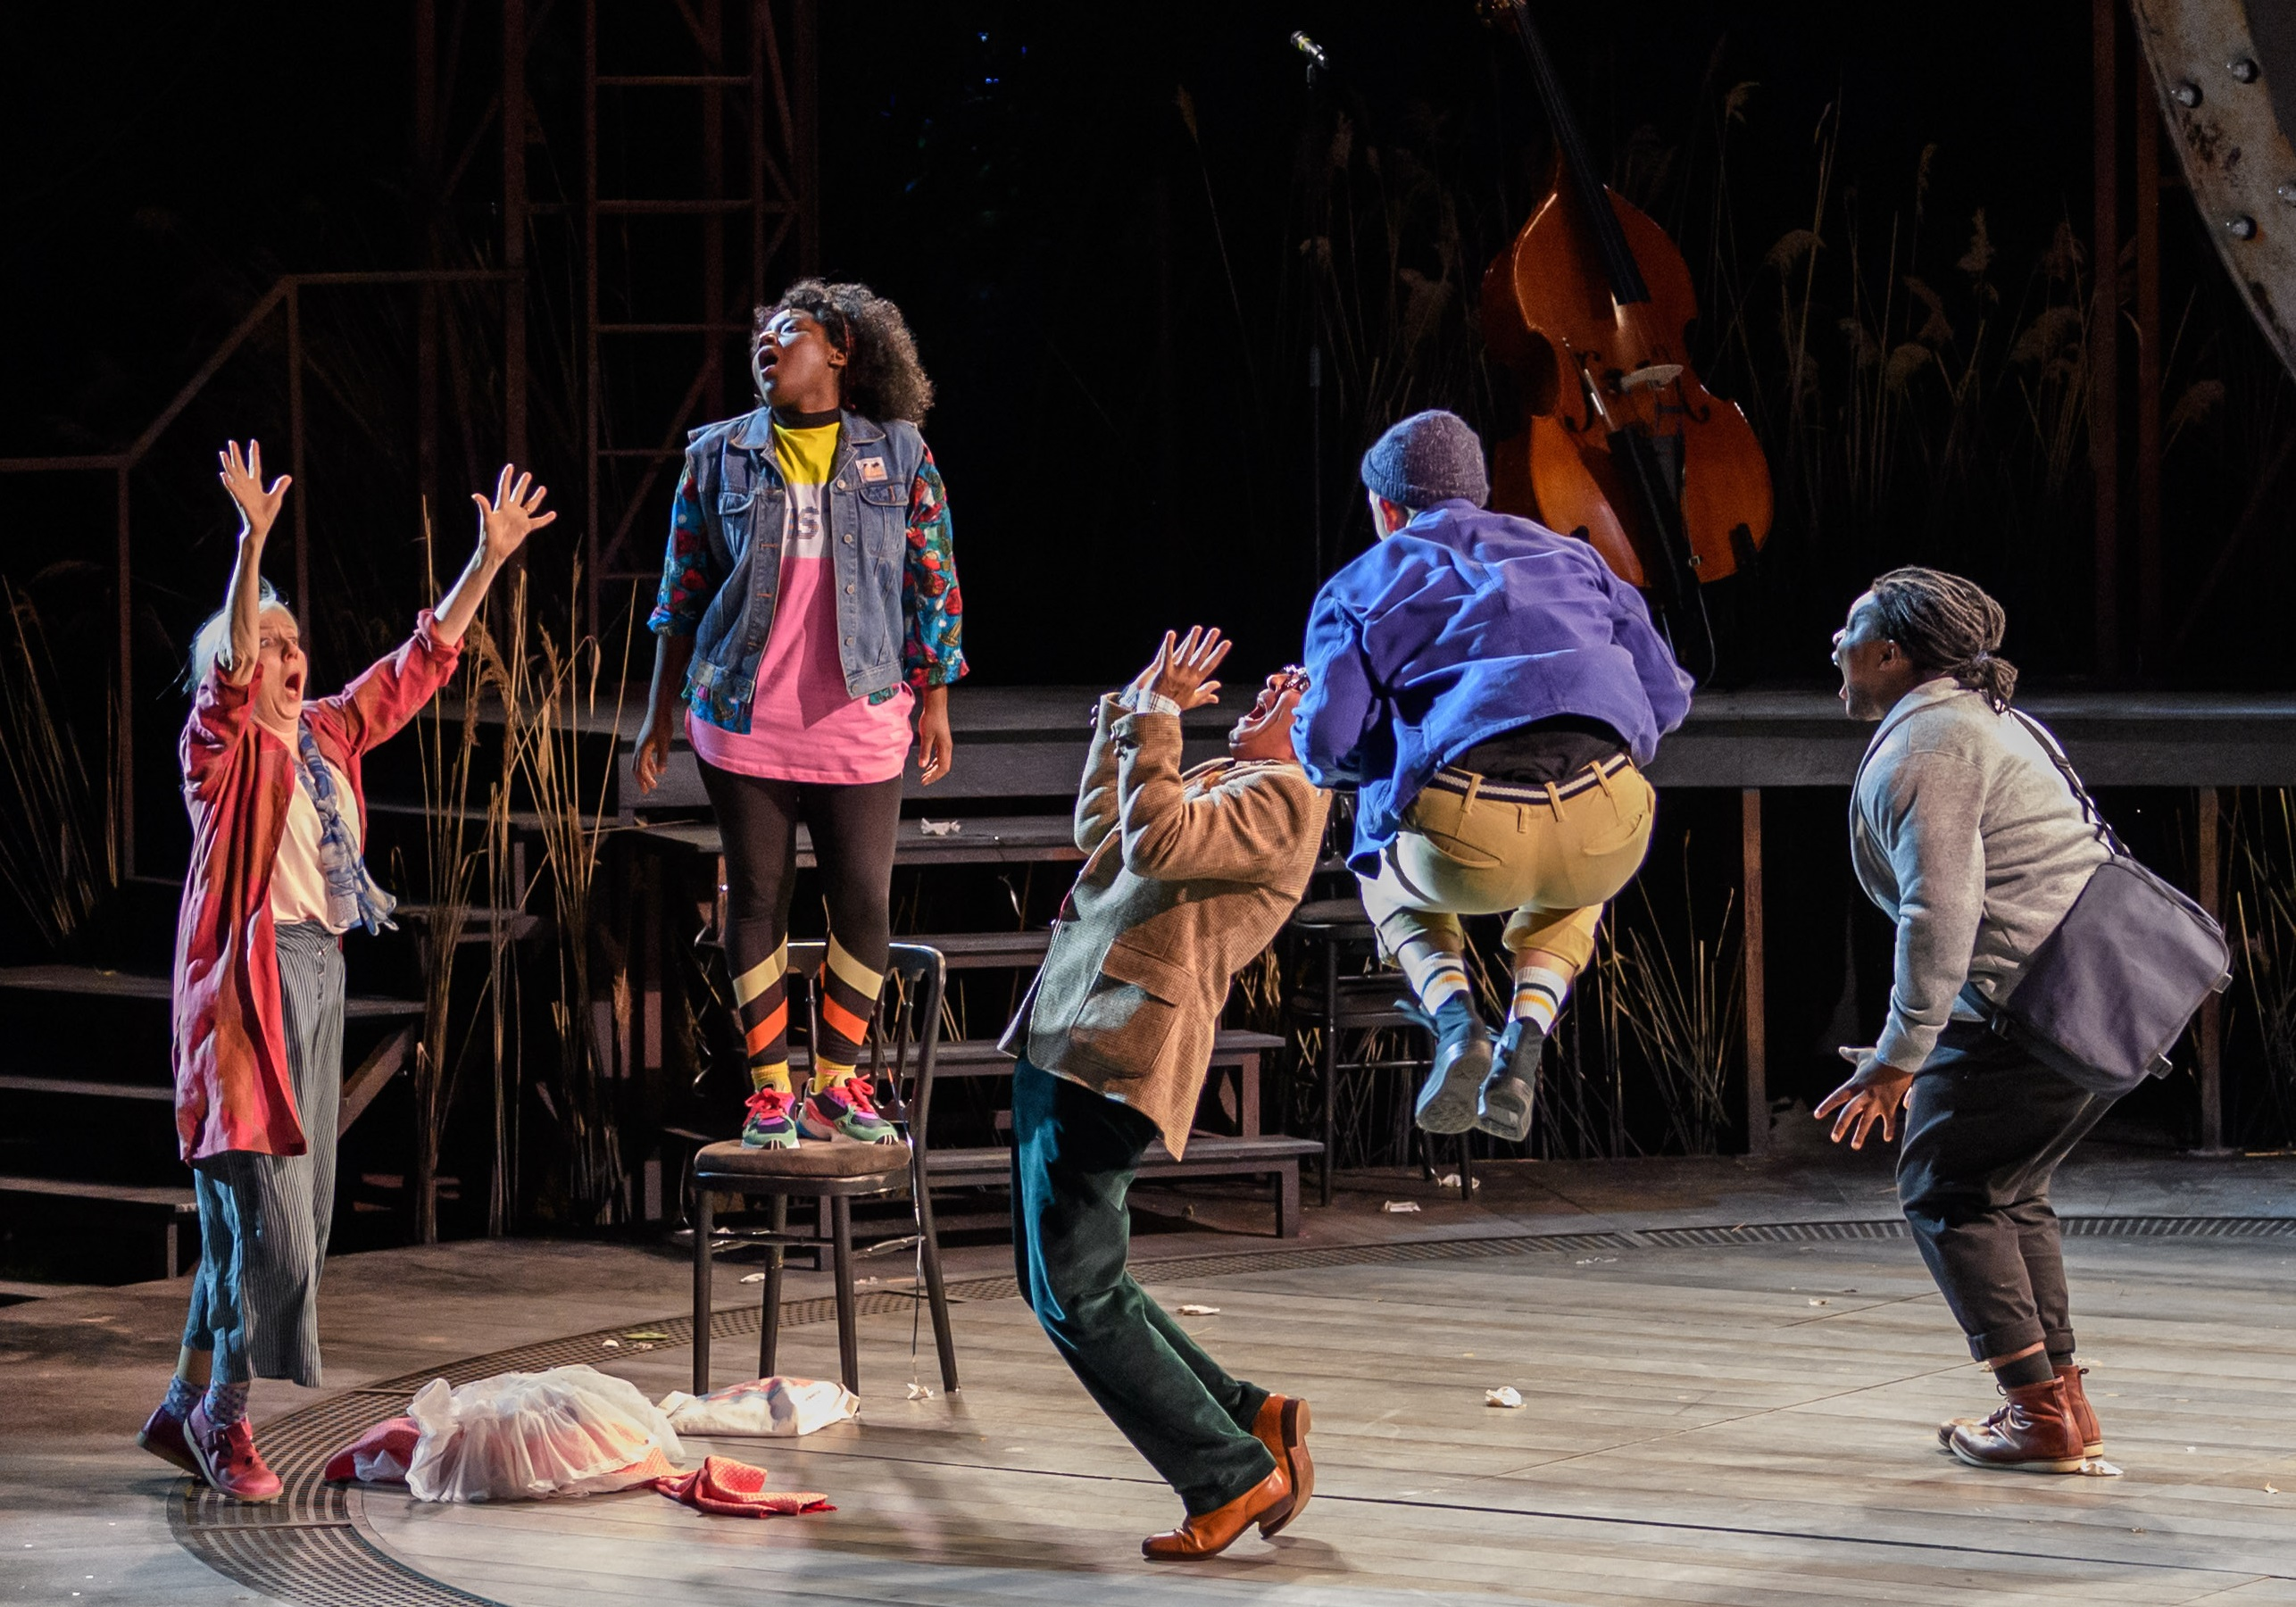 Liz Crowther, Susan Wokoma, Gareth Snook, Joshua Miles and Tomi Ogbaro as Starveling, Bottom, Quince, Flute and Snug in A Midsummer Night's Dream at the Open Air Theatre. Photo Jane Hobson